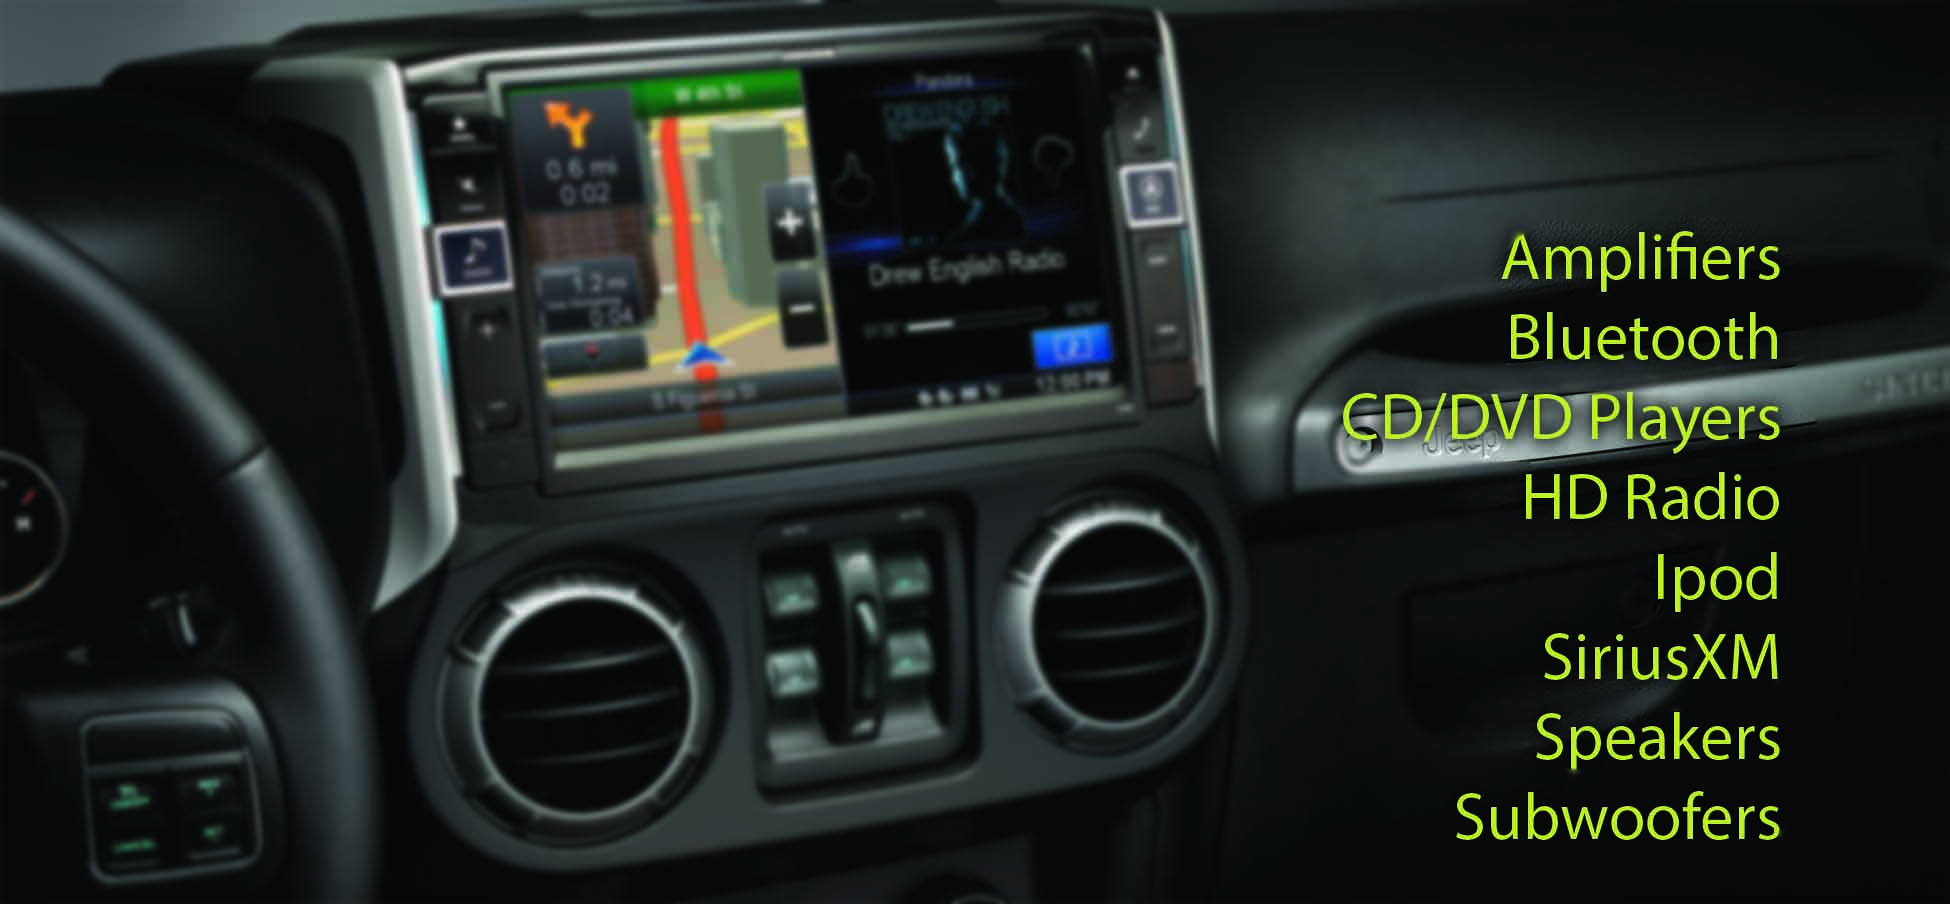 images/car-audio-header-menu.jpg